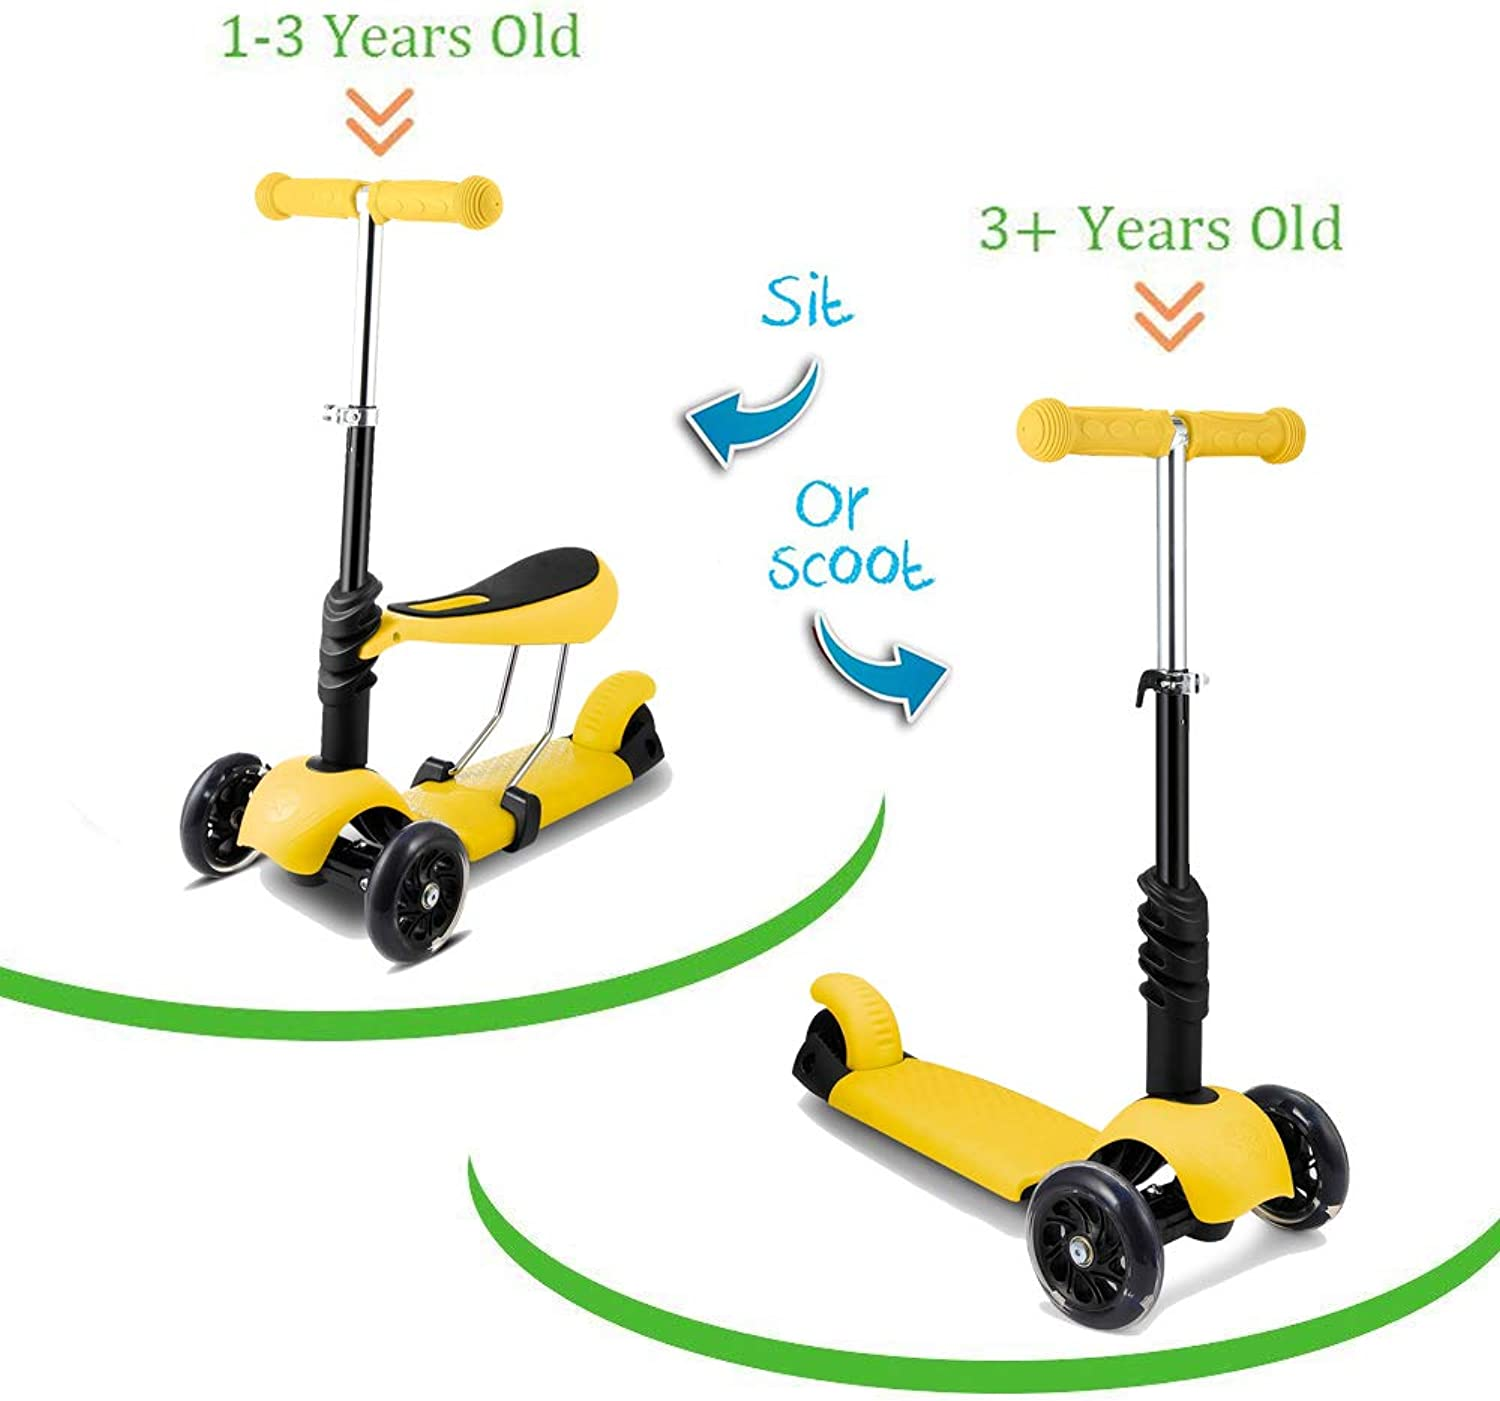 Aceshin 3in1 Kick Scooter for Kids Toddler Scooter Boys Girls with Removable Seat, LED Light Up Wheels and Adjustable Handlebar (US Stock)